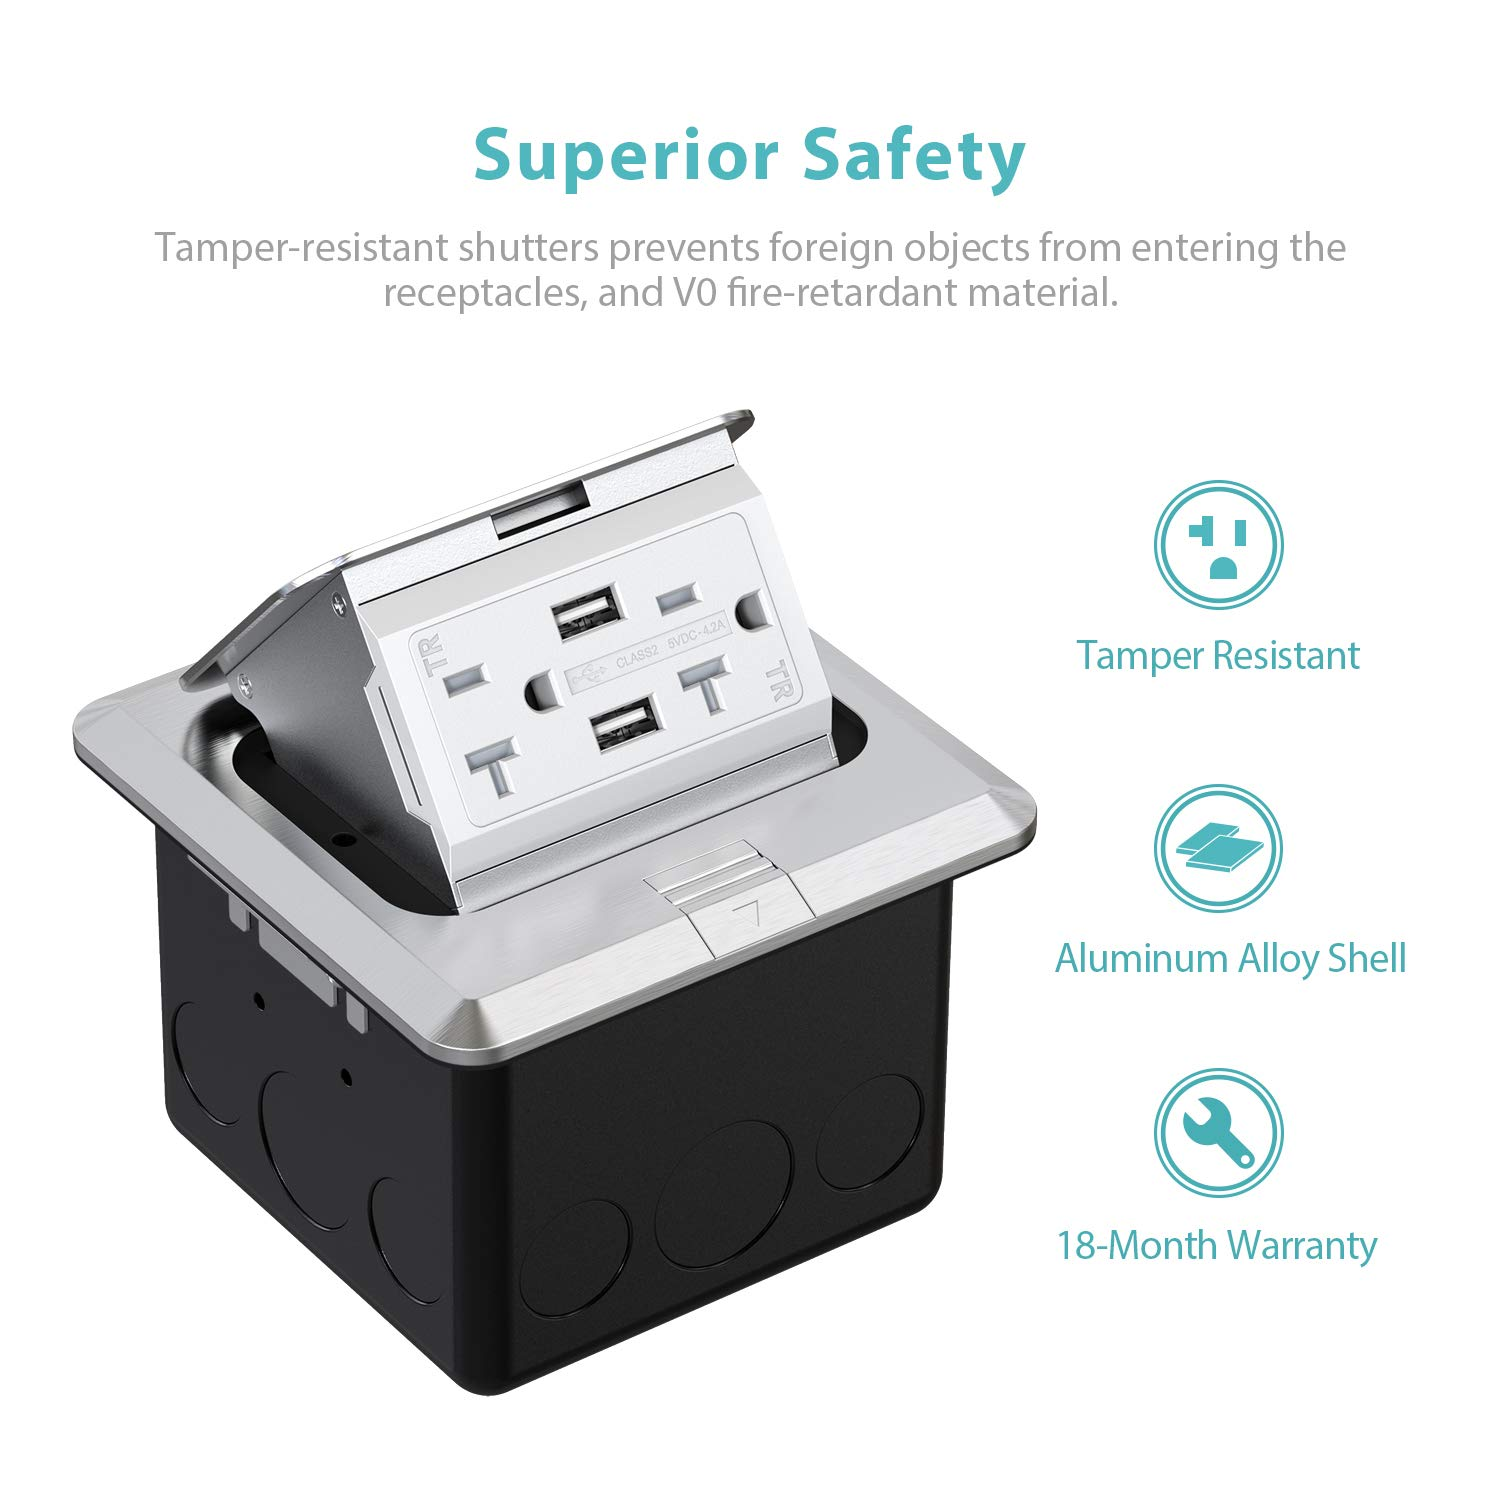 Tamper-Resistant Receptacle WEBANG Pop-Up Outlet Stainless Steel Floor Box Countertop Box 20A Electrical Outlet